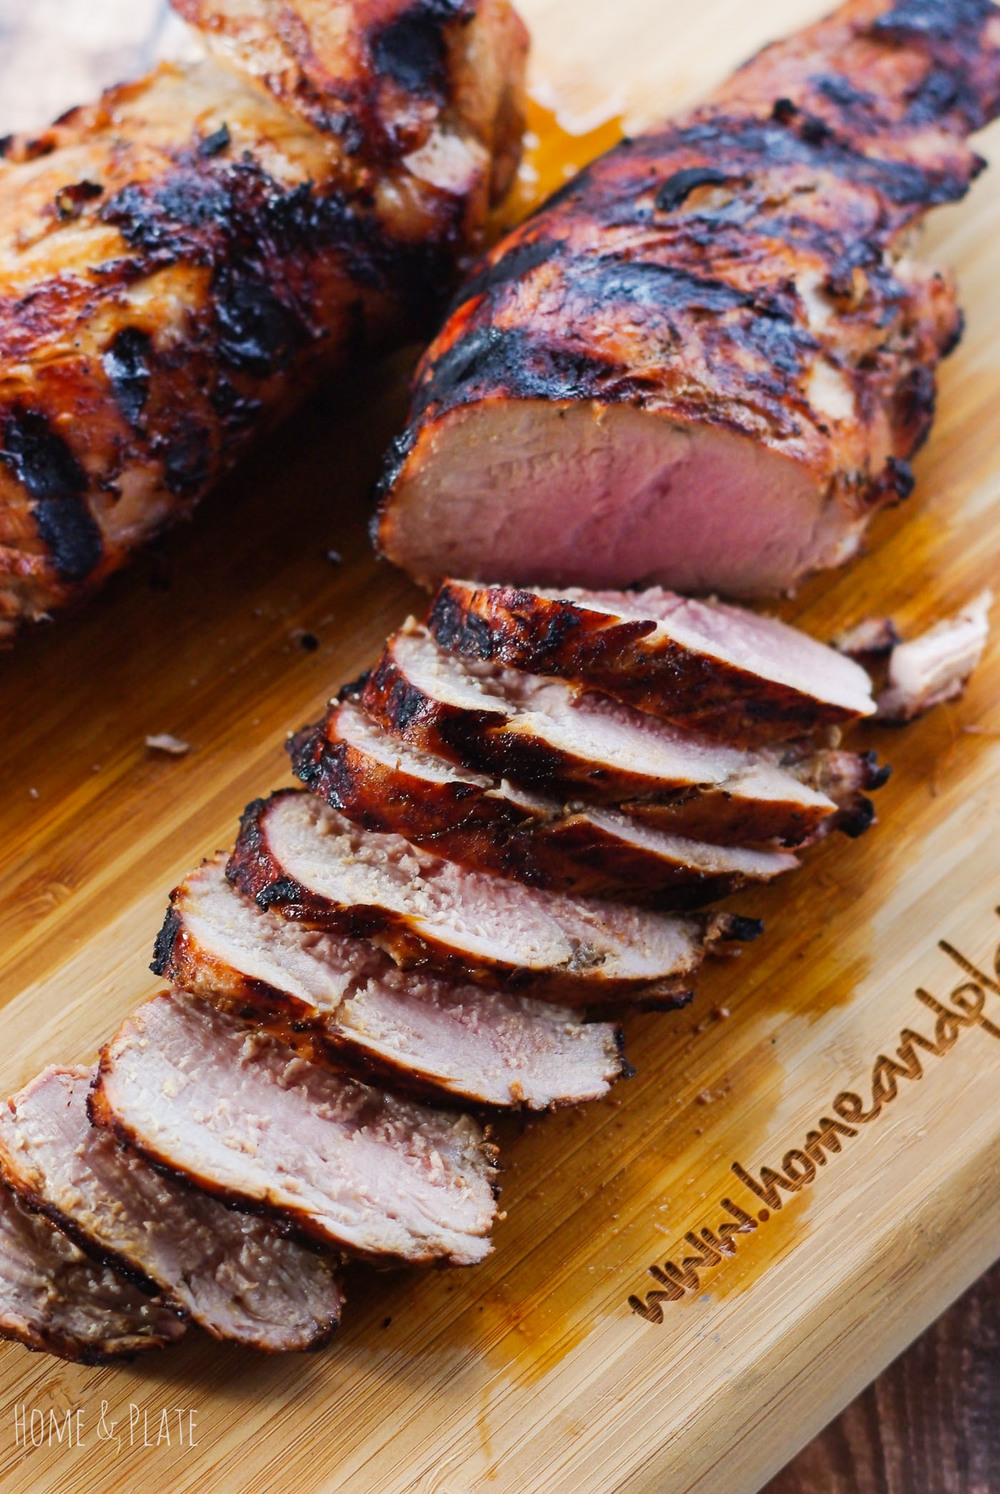 Balsamic and Brown Sugar Pork Tenderloin | Home & Plate | www.homeandplate.com | Grilled slowly this sticky sweet brown sugar balsamic pork tenderloin is sure to please everyone in the family.